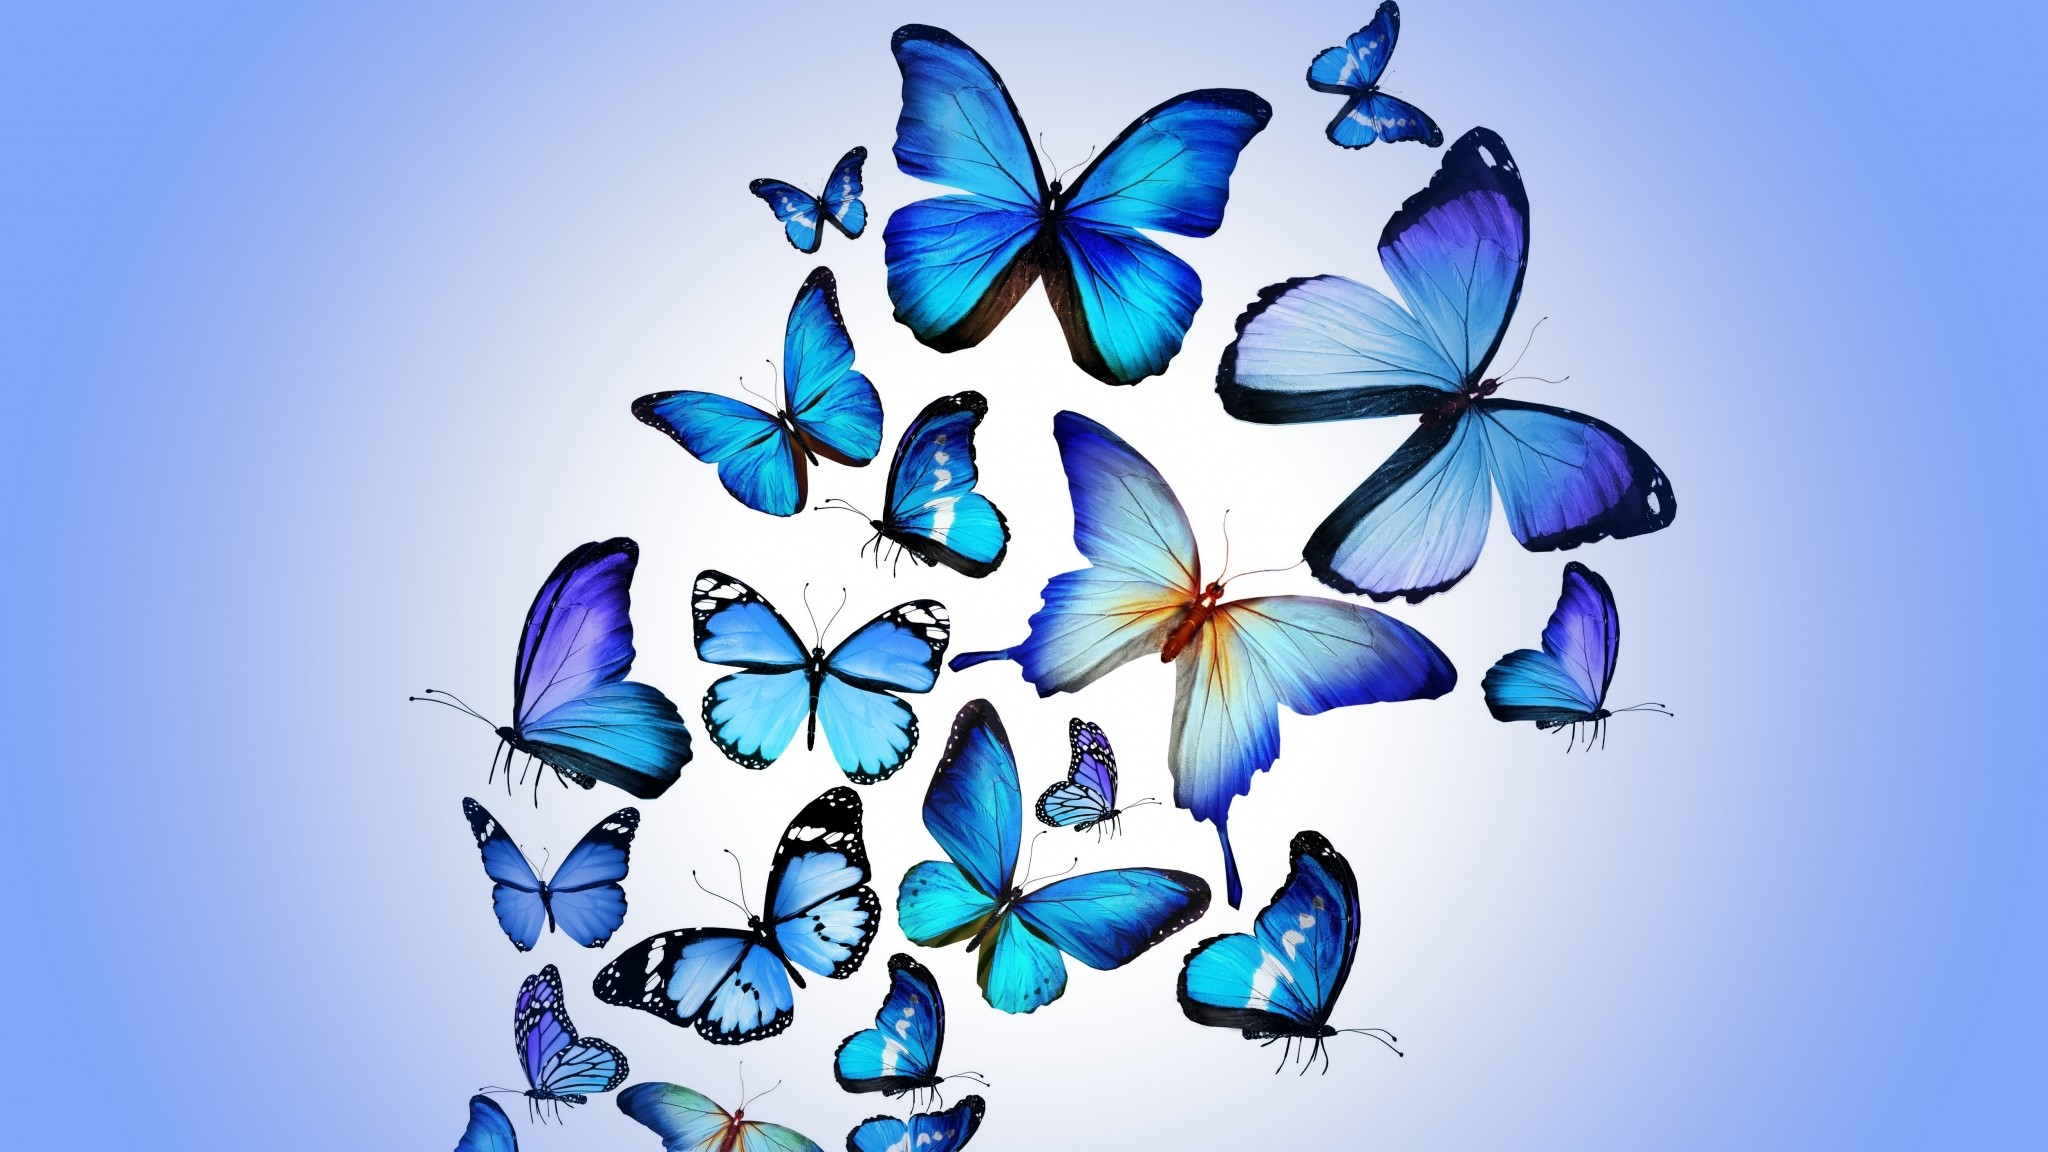 Download Wallpaper High Quality Butterfly - 448585  2018_73496.jpg